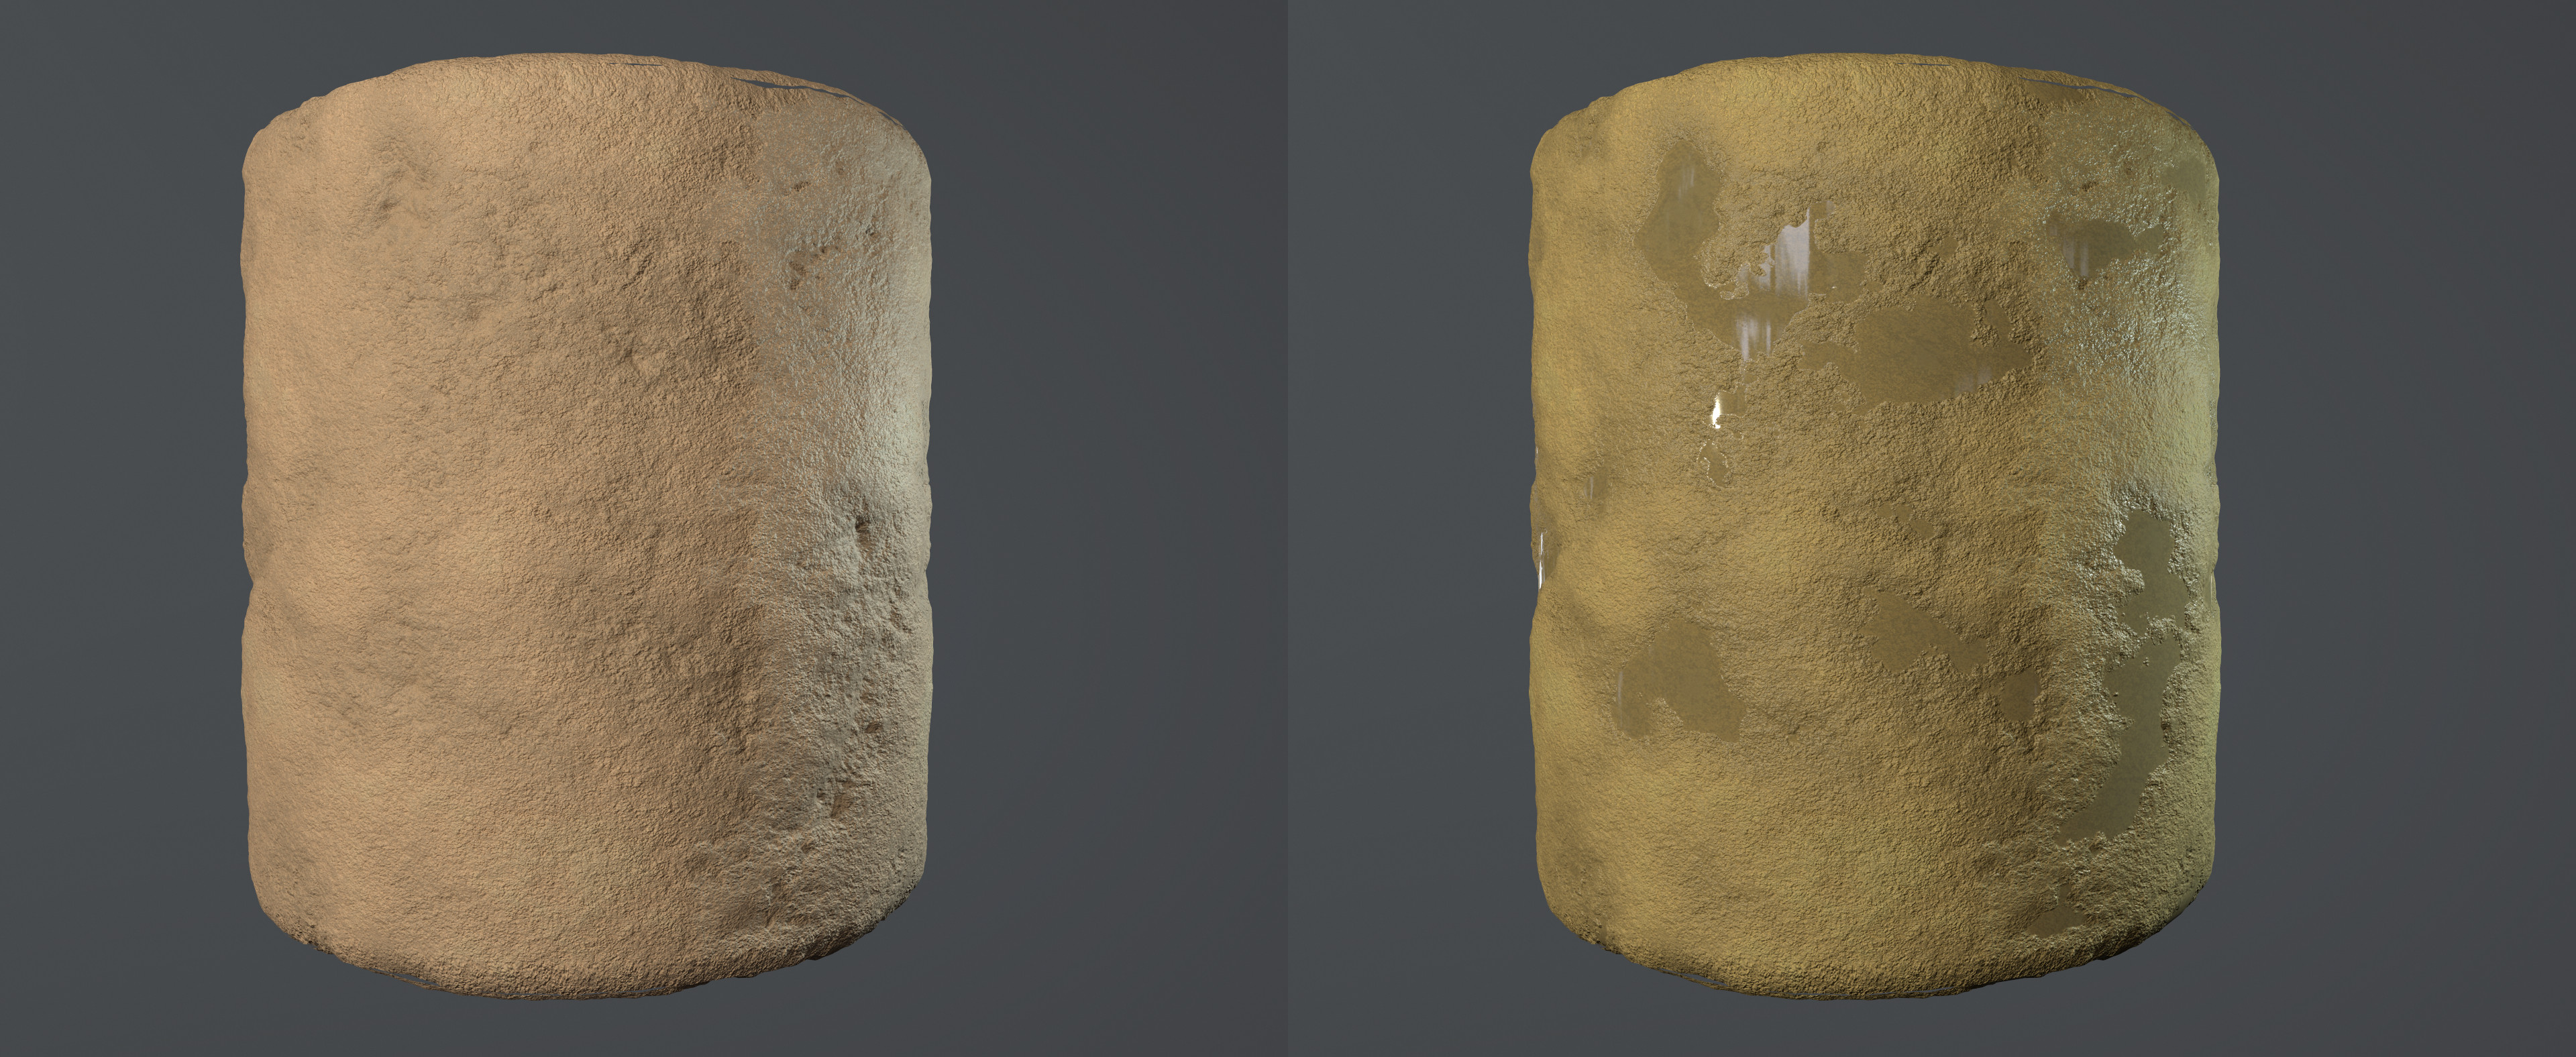 I made a material in Substance Designer; one with more puddles of water and one completely without. They were then used to paint the terrain in the first section of the game.